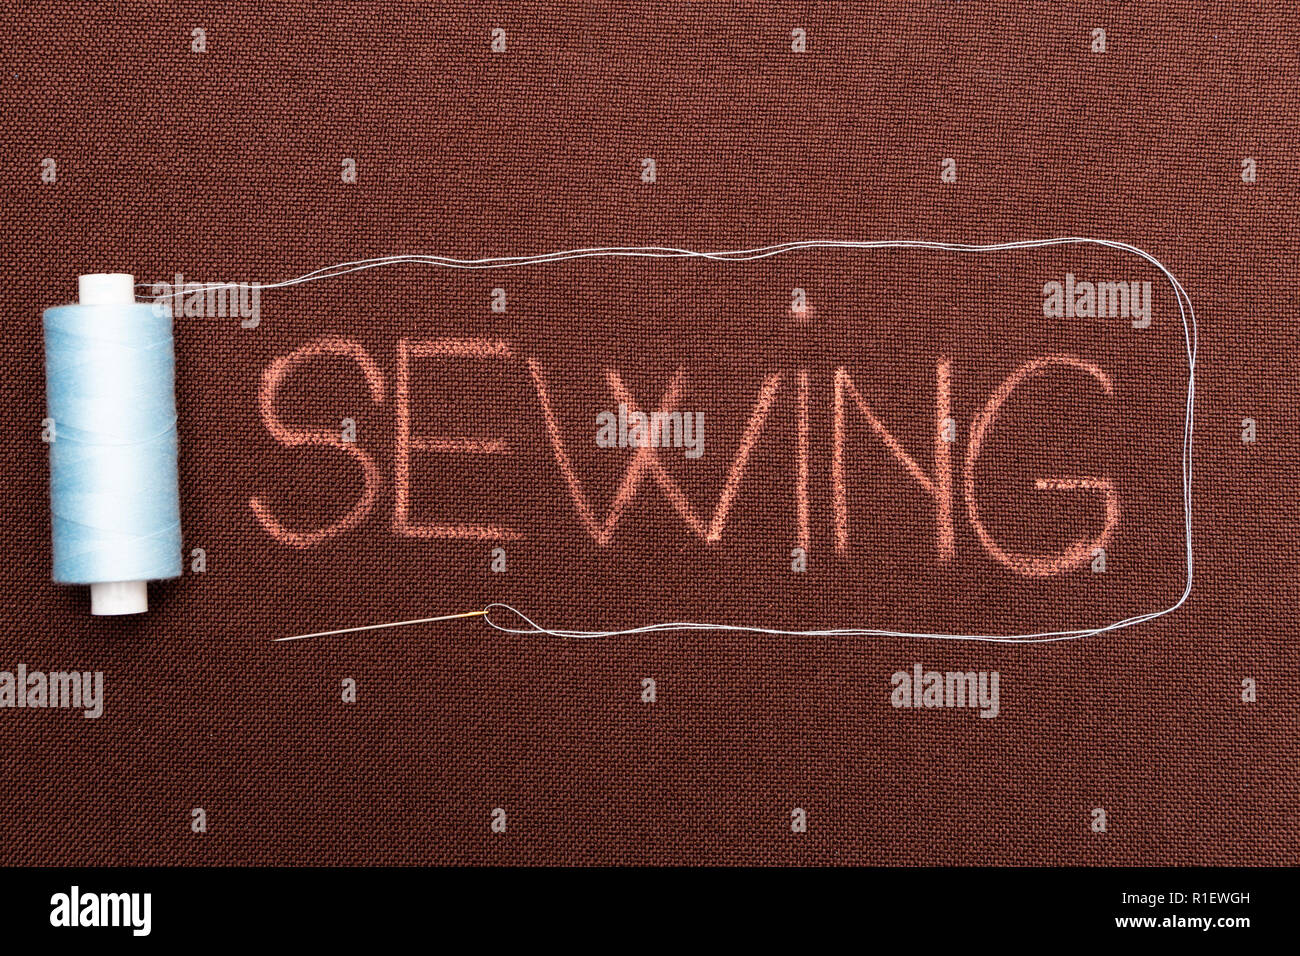 Sewing text written on brown material bordered with blue thread and needle - Stock Image